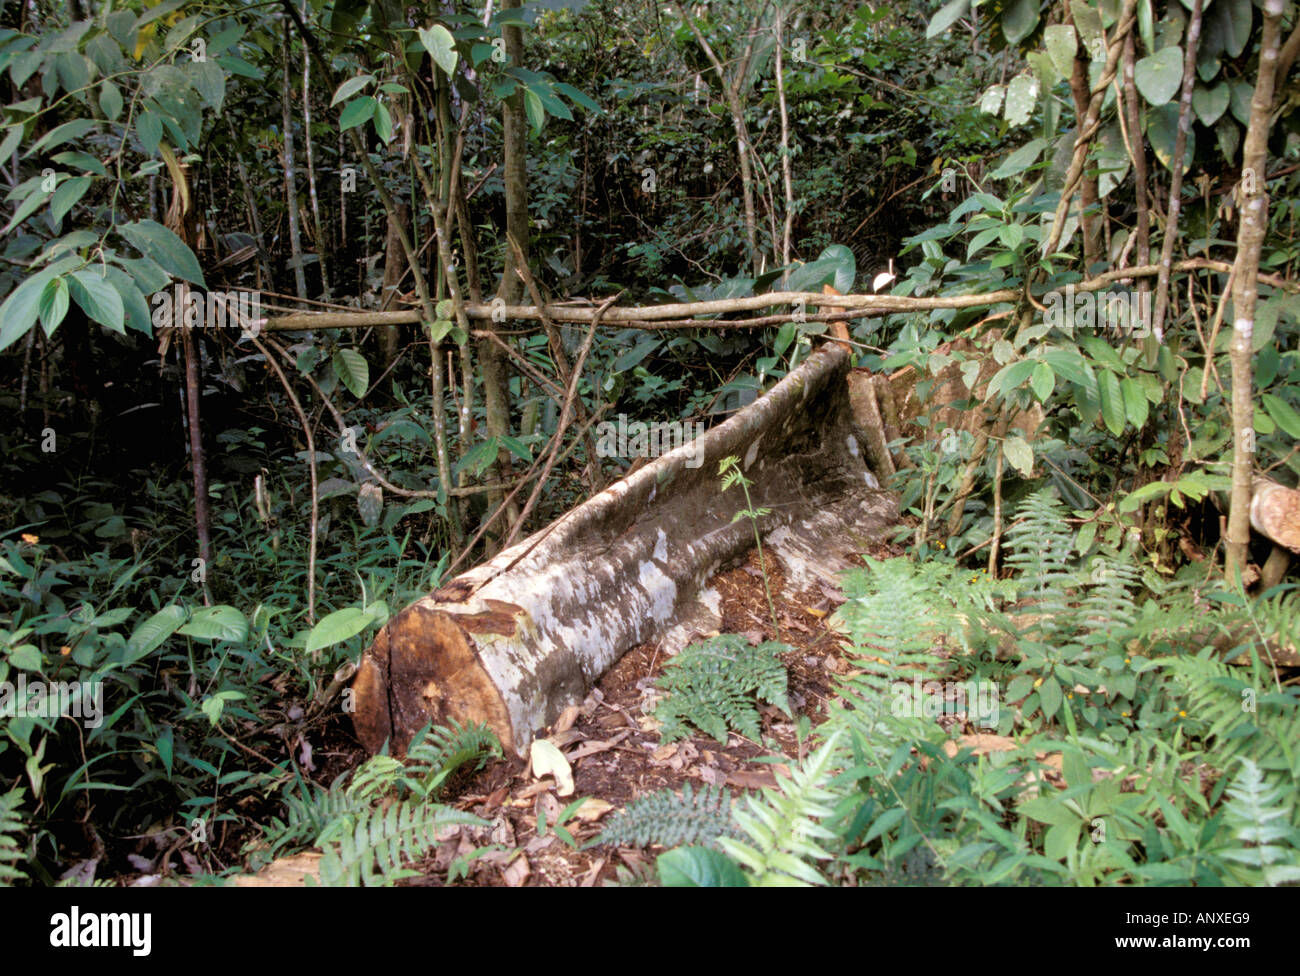 Asia, Indonesia, Sulawesi, Minahasa, Ilo Loi Forest. Track where logs are dragged out of forest - Stock Image